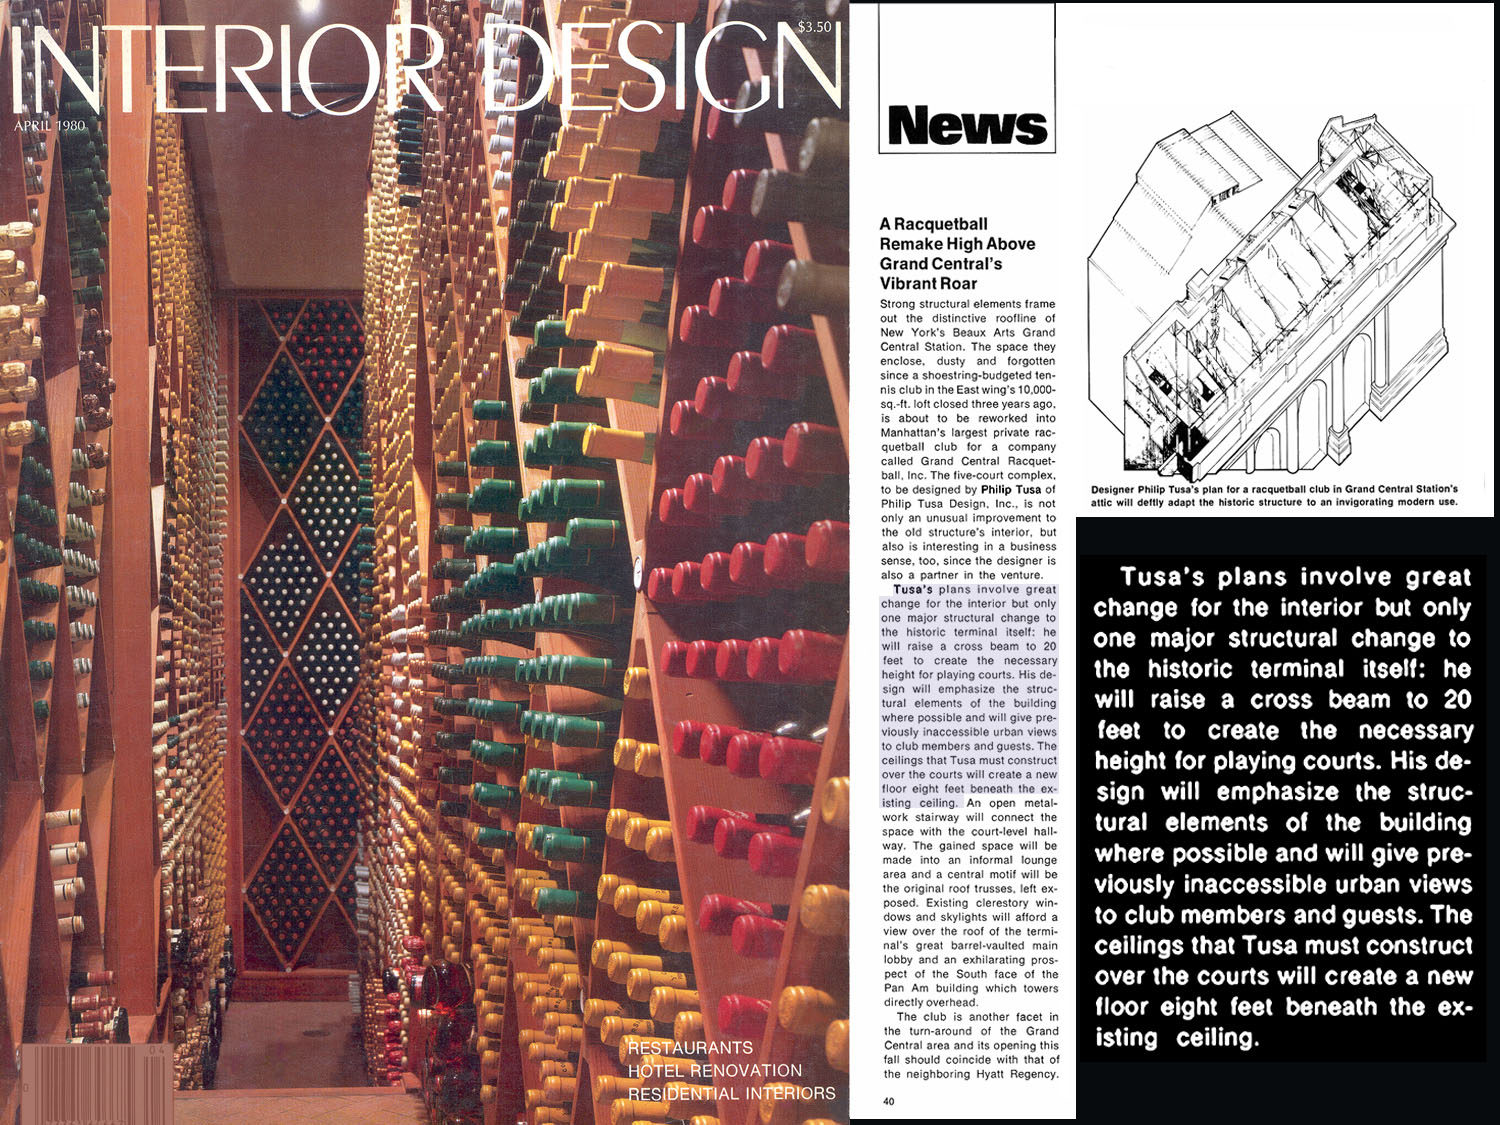 Interior Design Magazine Article (4/80) pg 40; Grand Central Racquetball Club